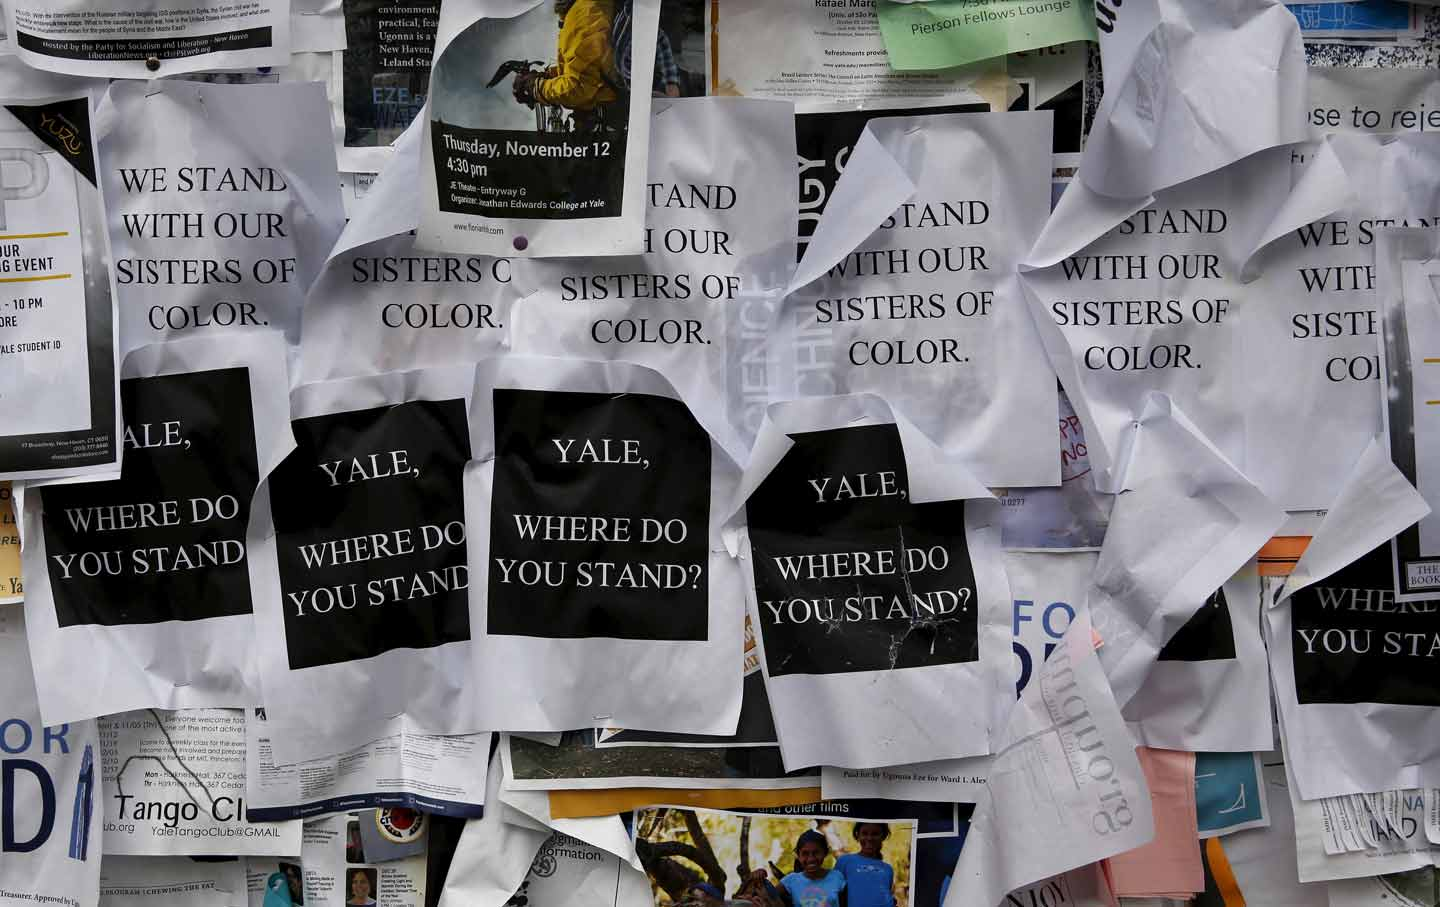 Flyers are seen posted on a college noticeboard on campus at Yale University in New Haven, Connecticut November 12, 2015.